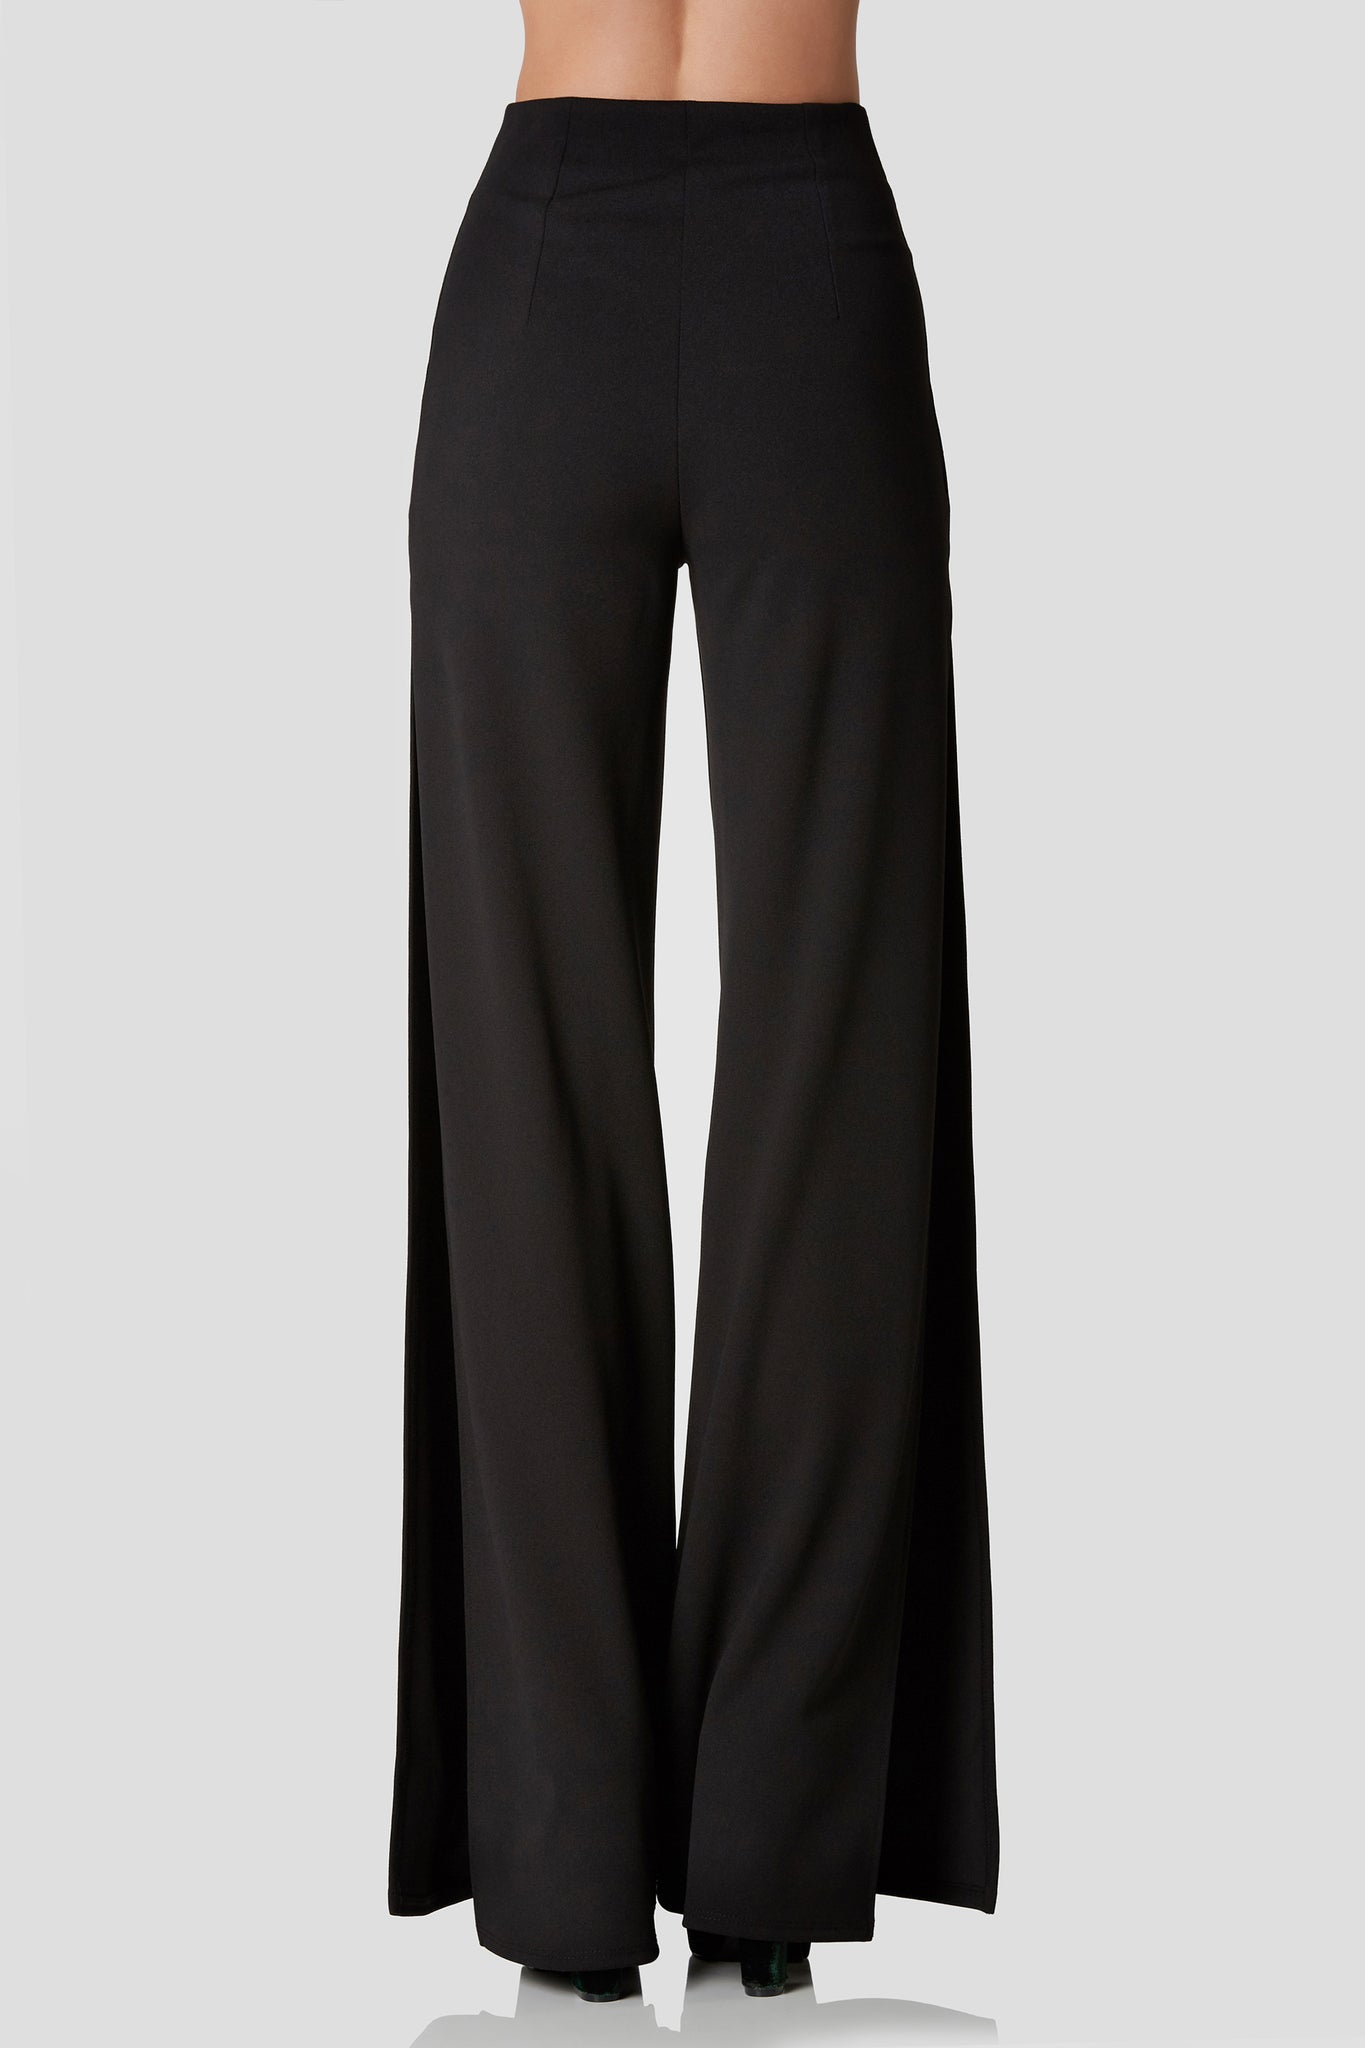 Chic high rise pants with trendy front center zip with hoop detailing. Flared hem with bold side slits.